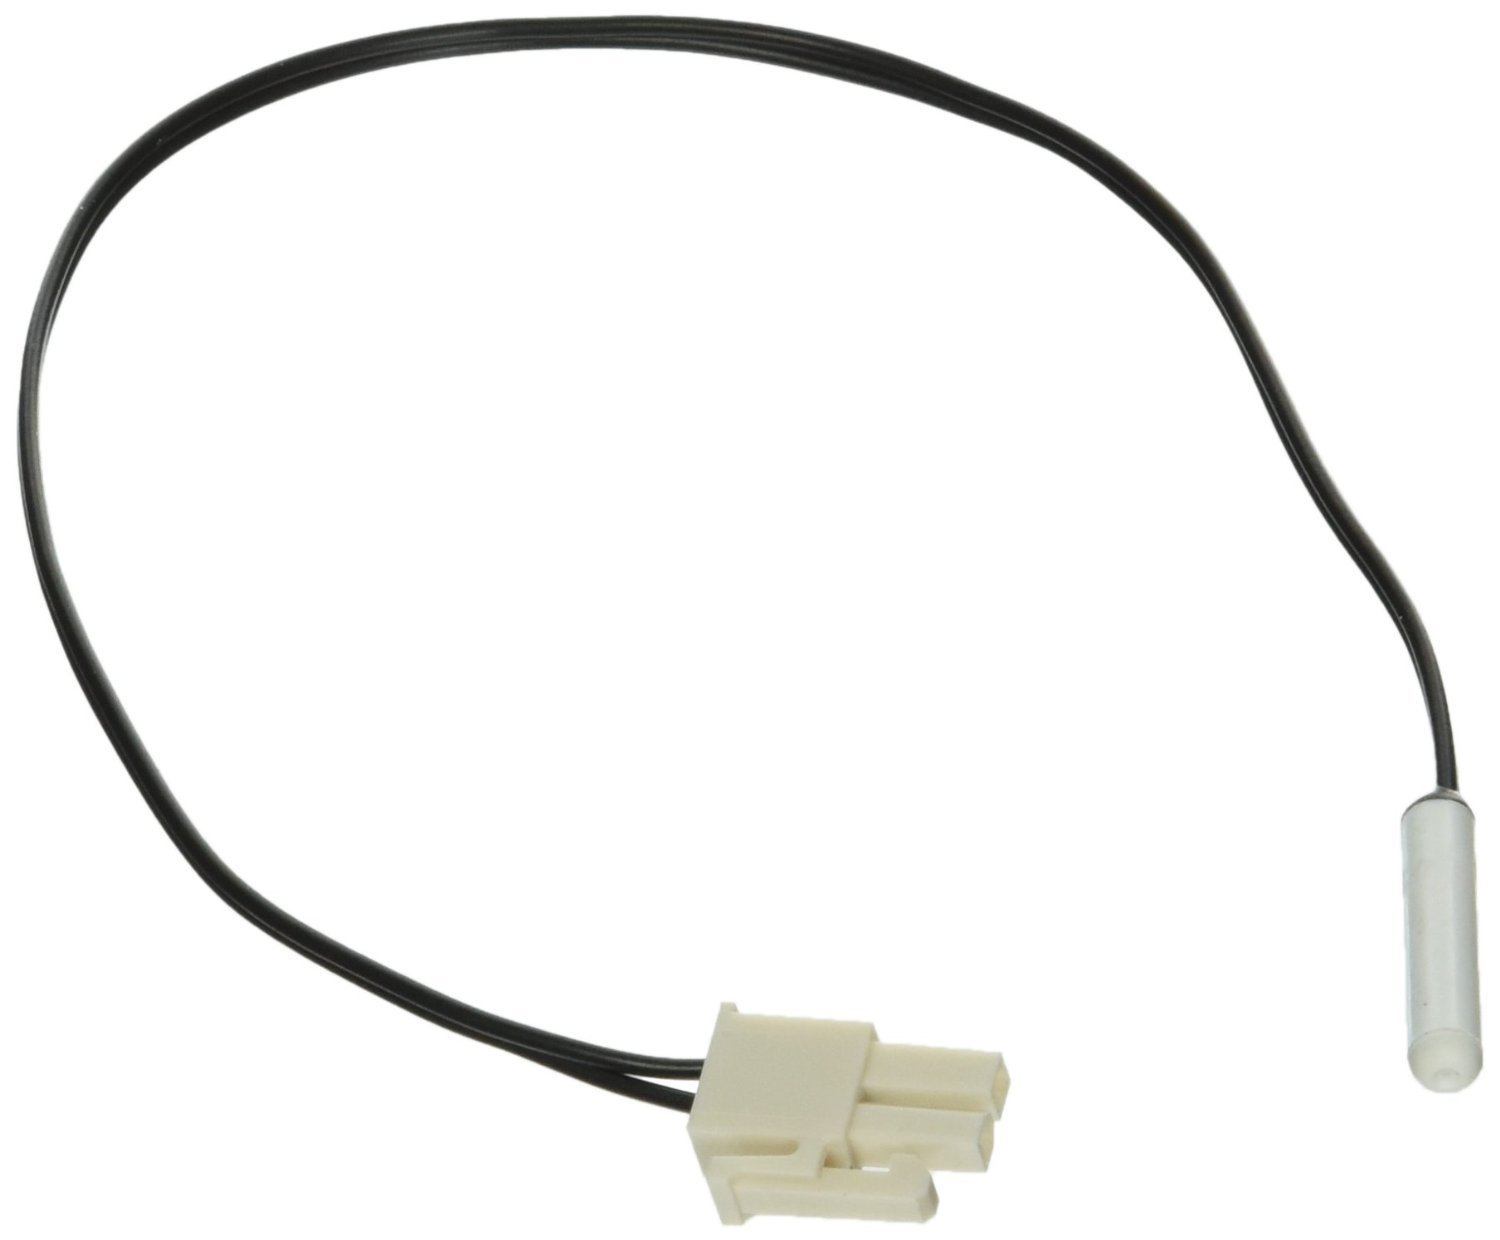 Refrigerator Air Temperature Sensor Thermistor Replacement for Whirlpool 2188819 AP6006067 PS11739131